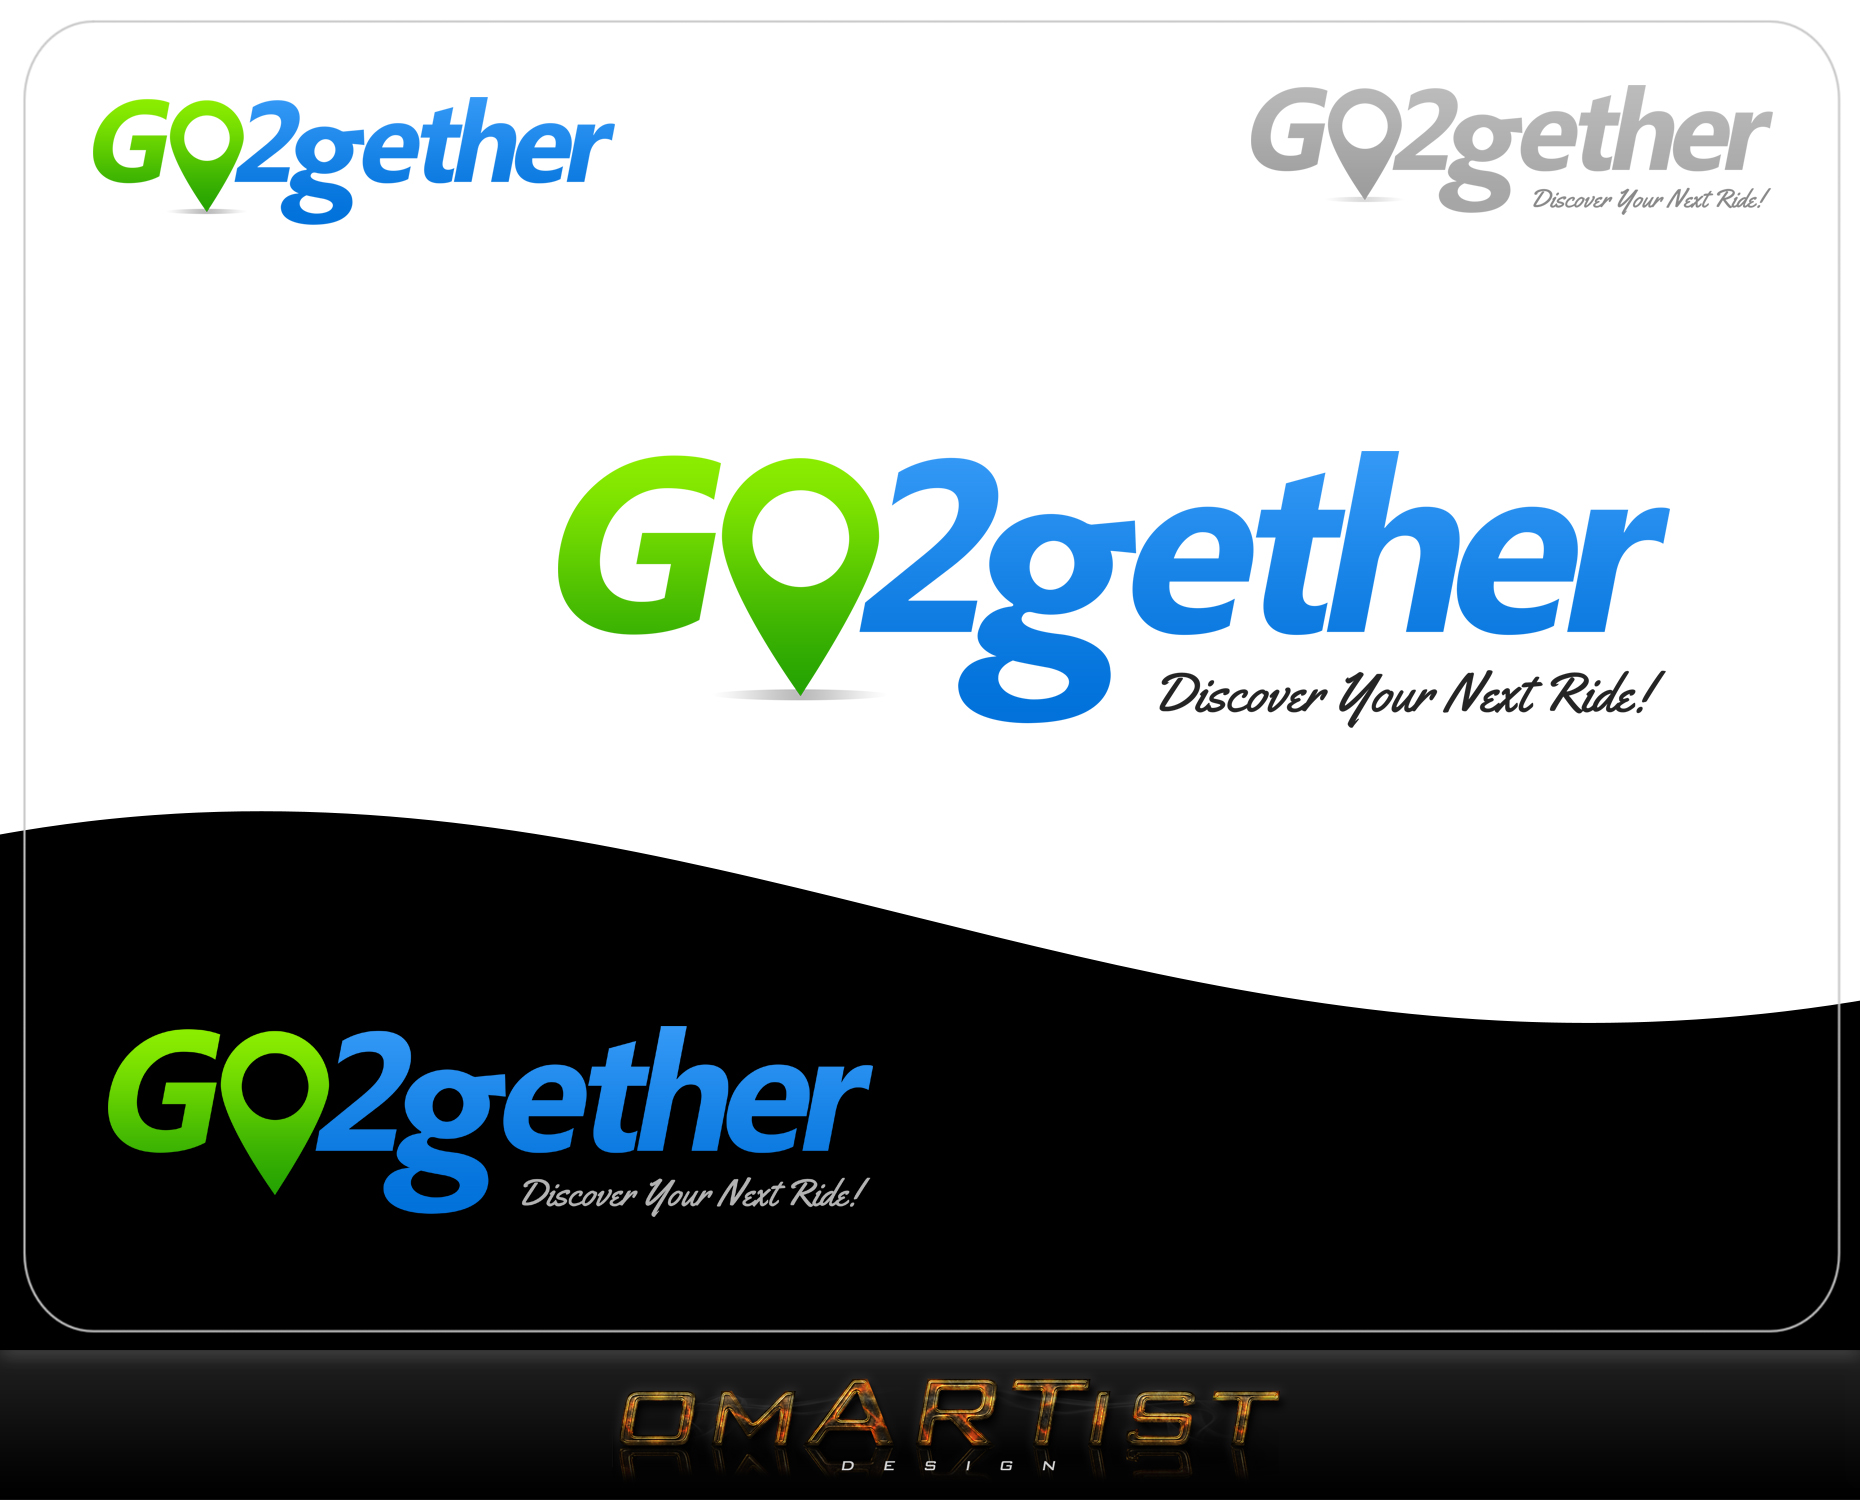 Logo Design by omARTist - Entry No. 143 in the Logo Design Contest Captivating Logo Design for GO2GETHER.